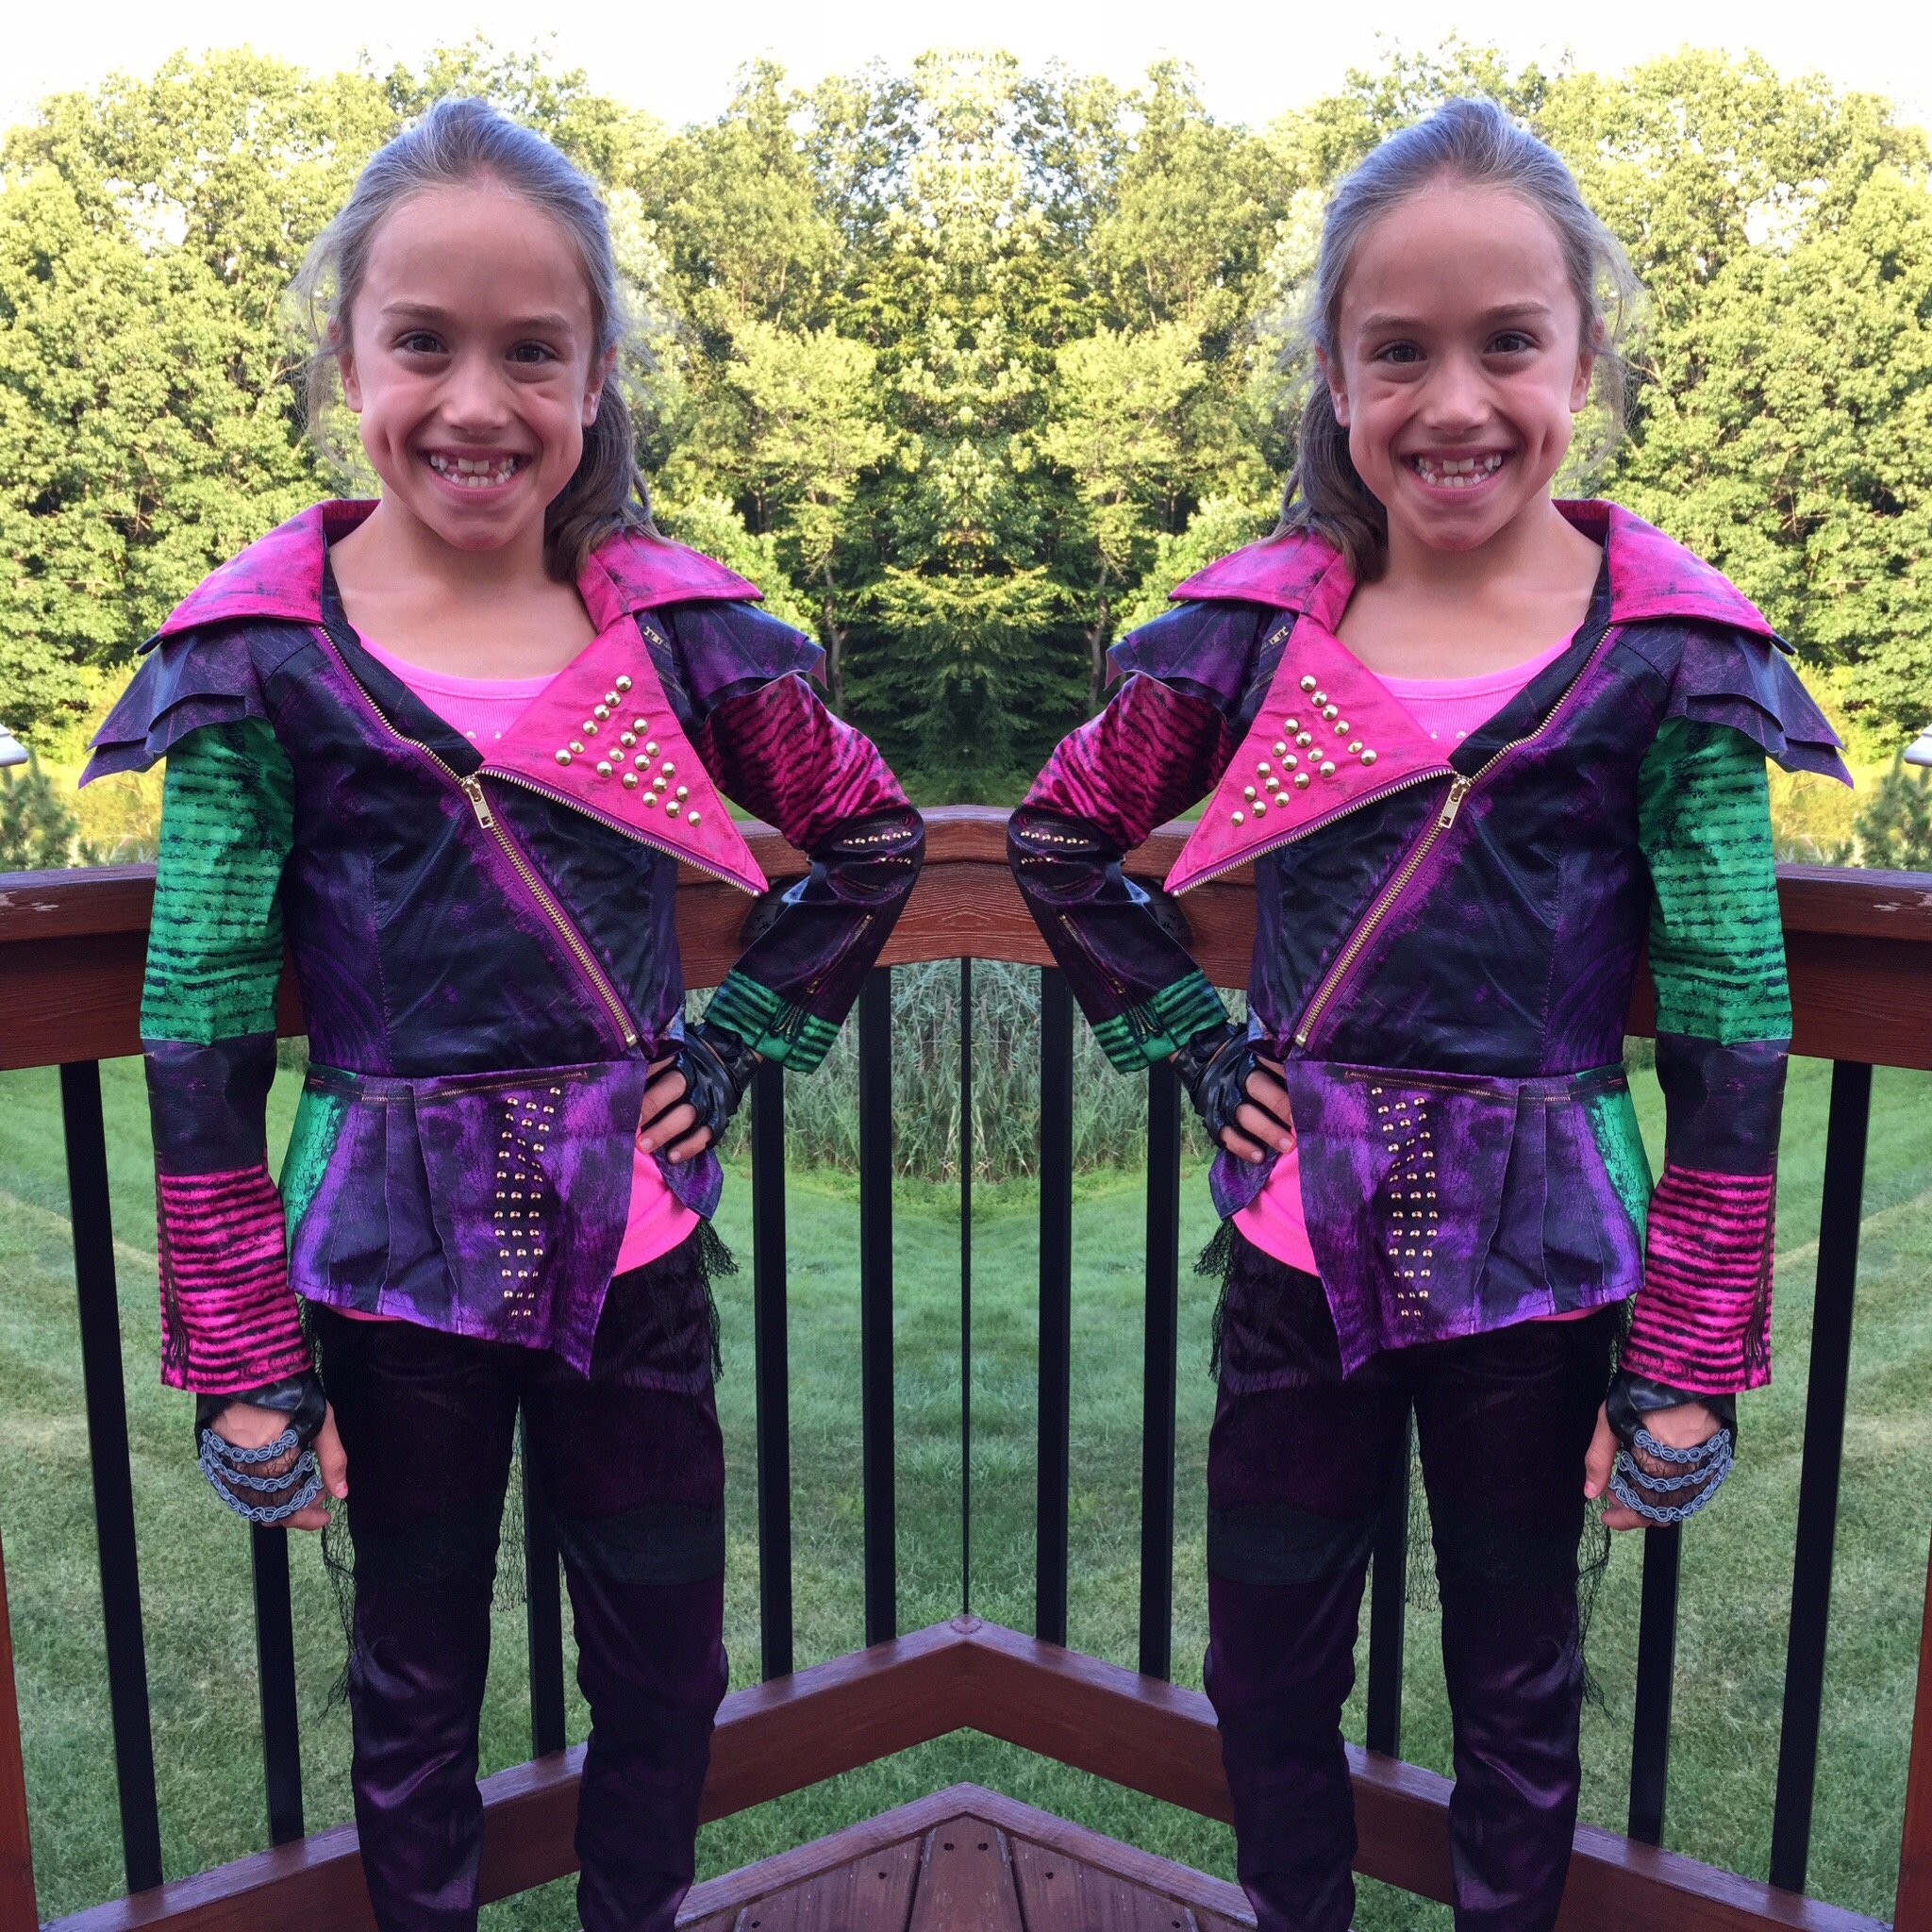 Disney Descendants Mal Costume Photos Video and Ideas for Halloween